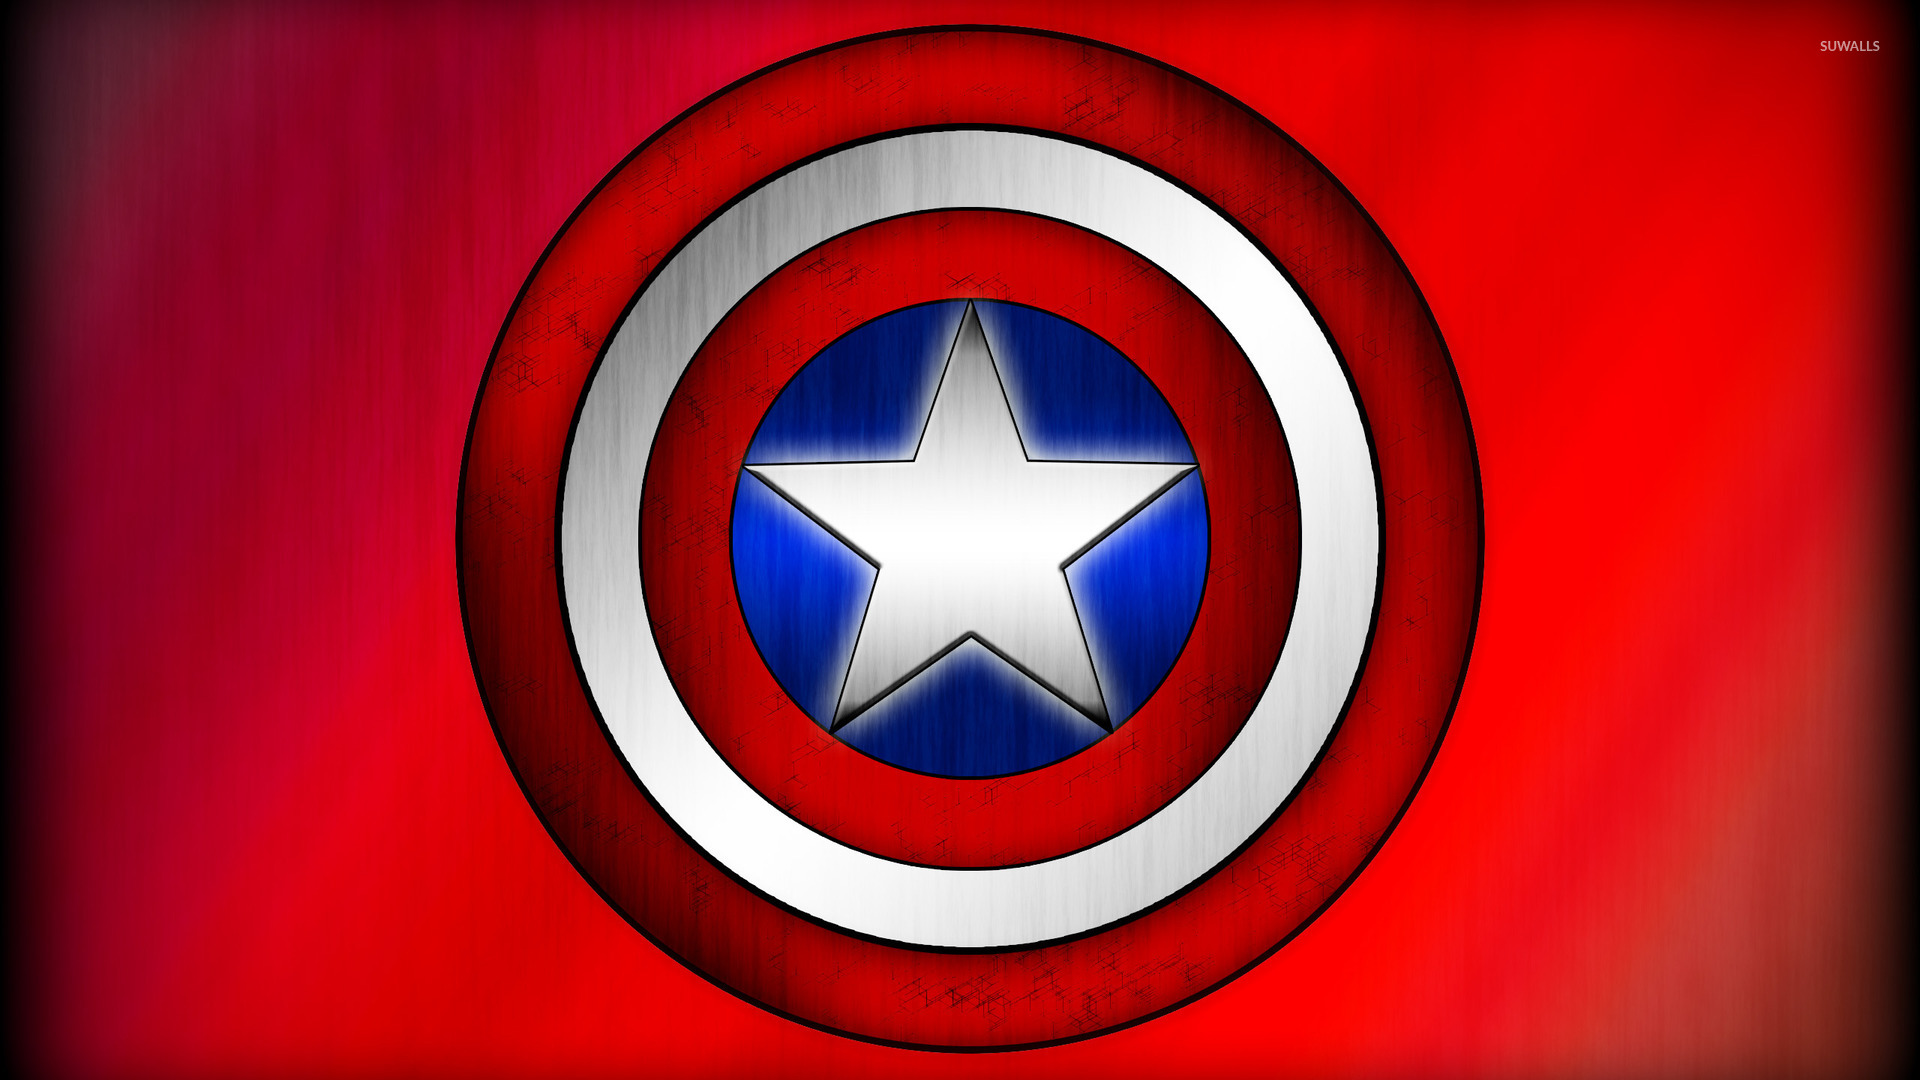 captain america shield wallpapers - photo #17